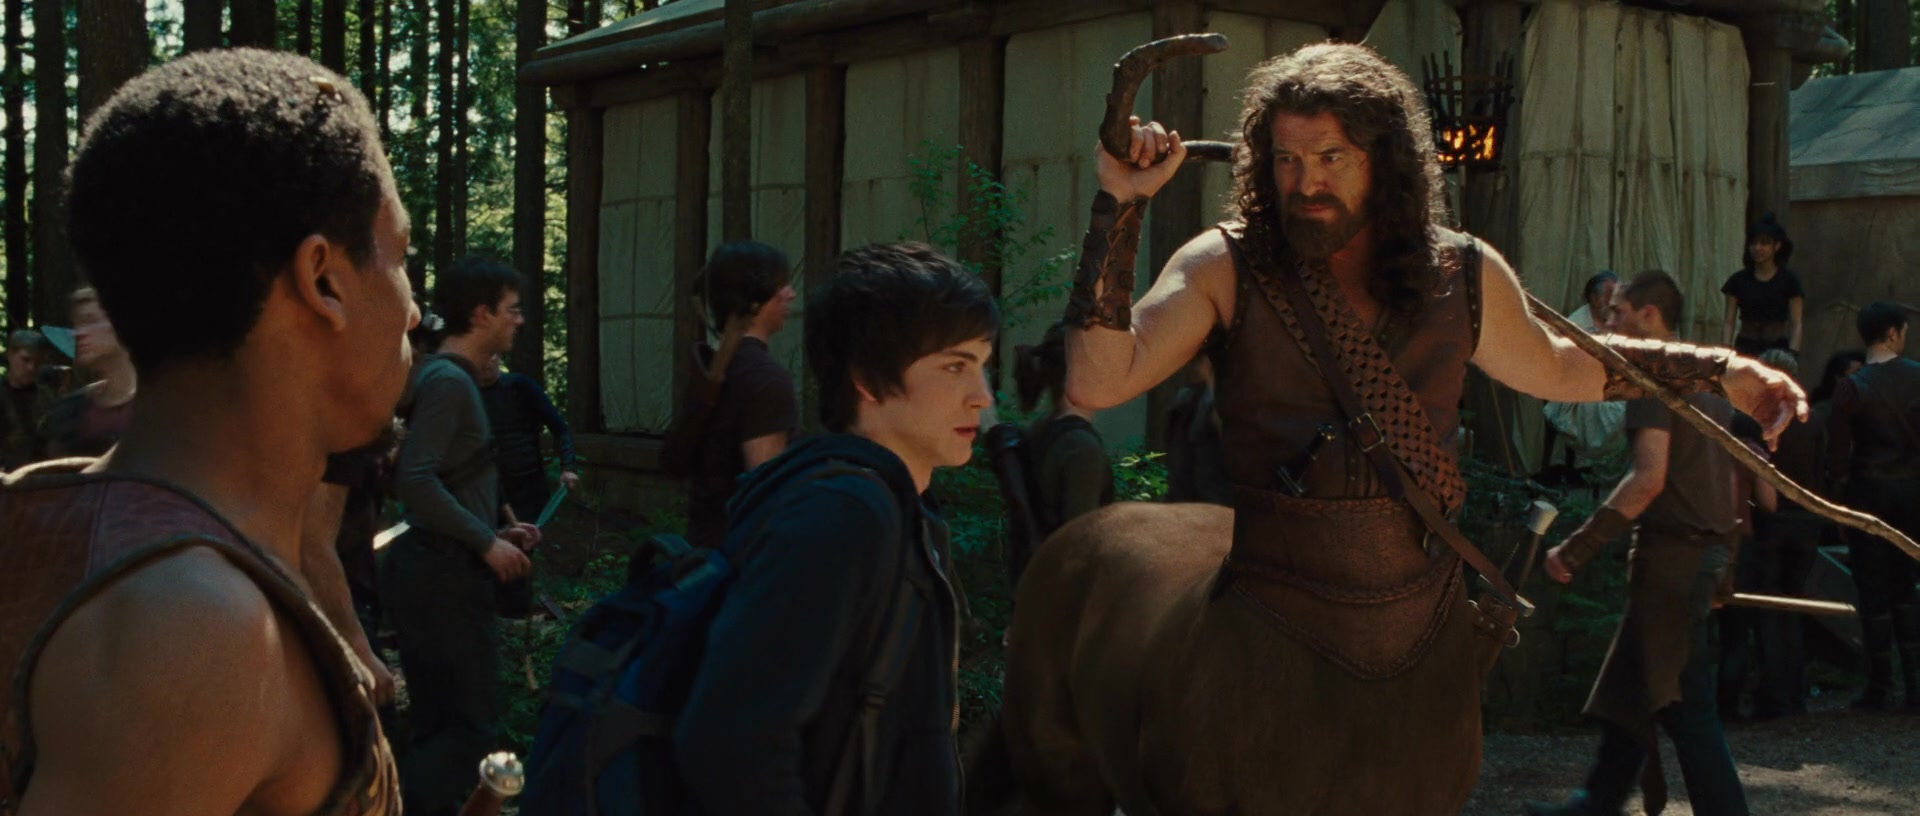 Percy Jackson And The Olympians The Lightning Thief Percy Jackson The Olympians The Lightning Thief 2010 Bdrip 1080p 2775 High Quality Movie Screencaps Gallery